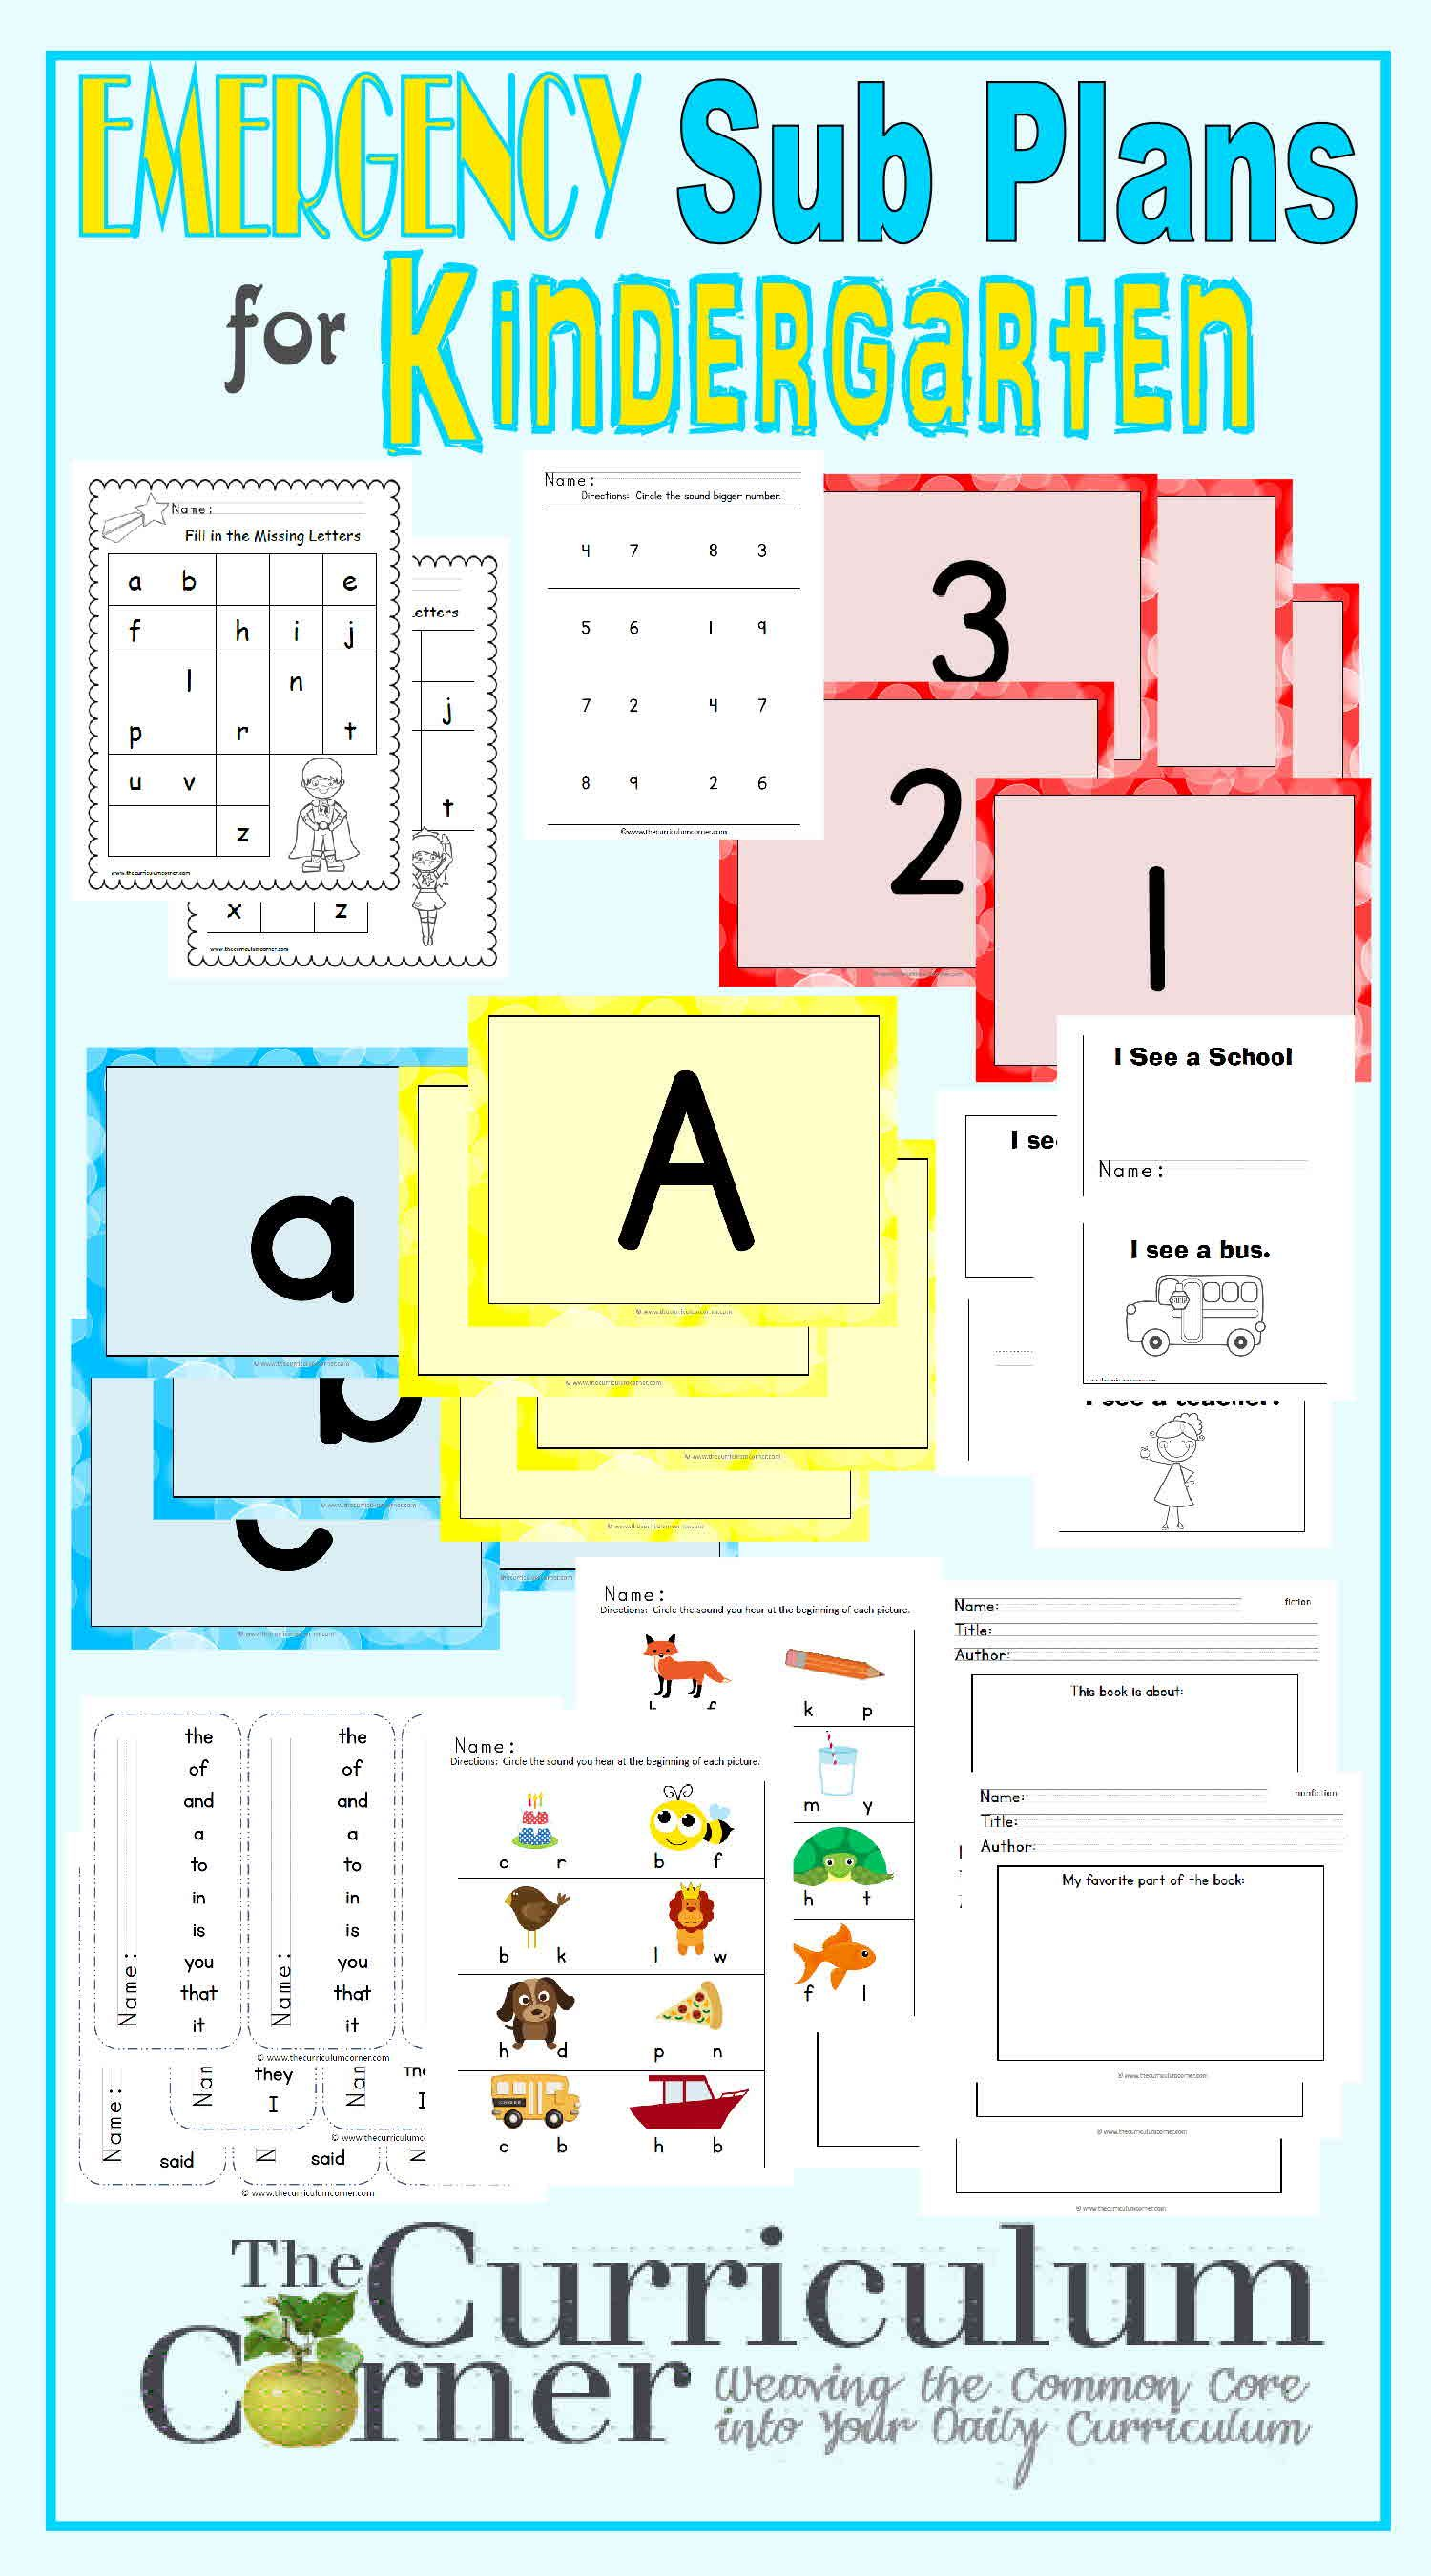 Worksheet Kindergarten Curriculum Free kindergarten curriculum map google search school pinterest emergency sub plans